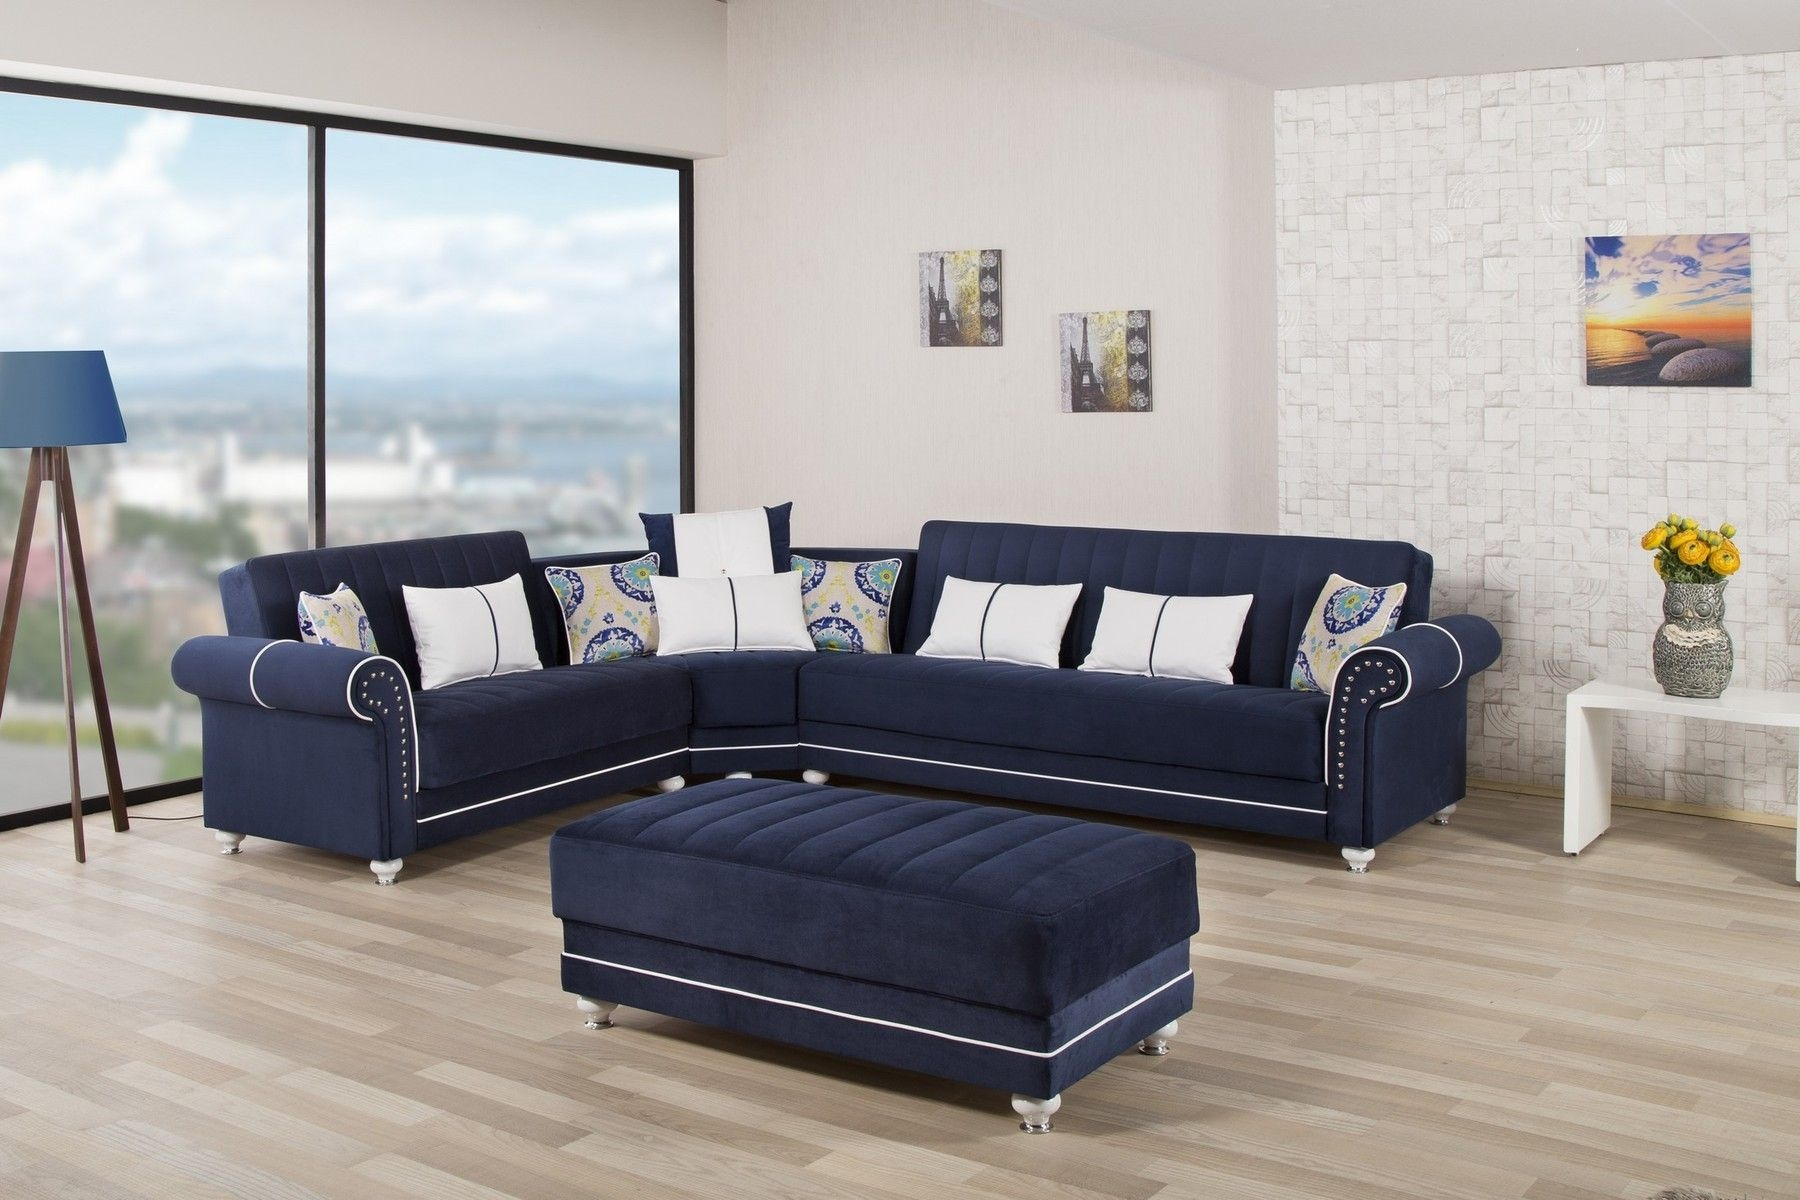 Casamode Royal Home Blue Modern Dark Sectional W Bedstorage  Sectional Sofa Living Room